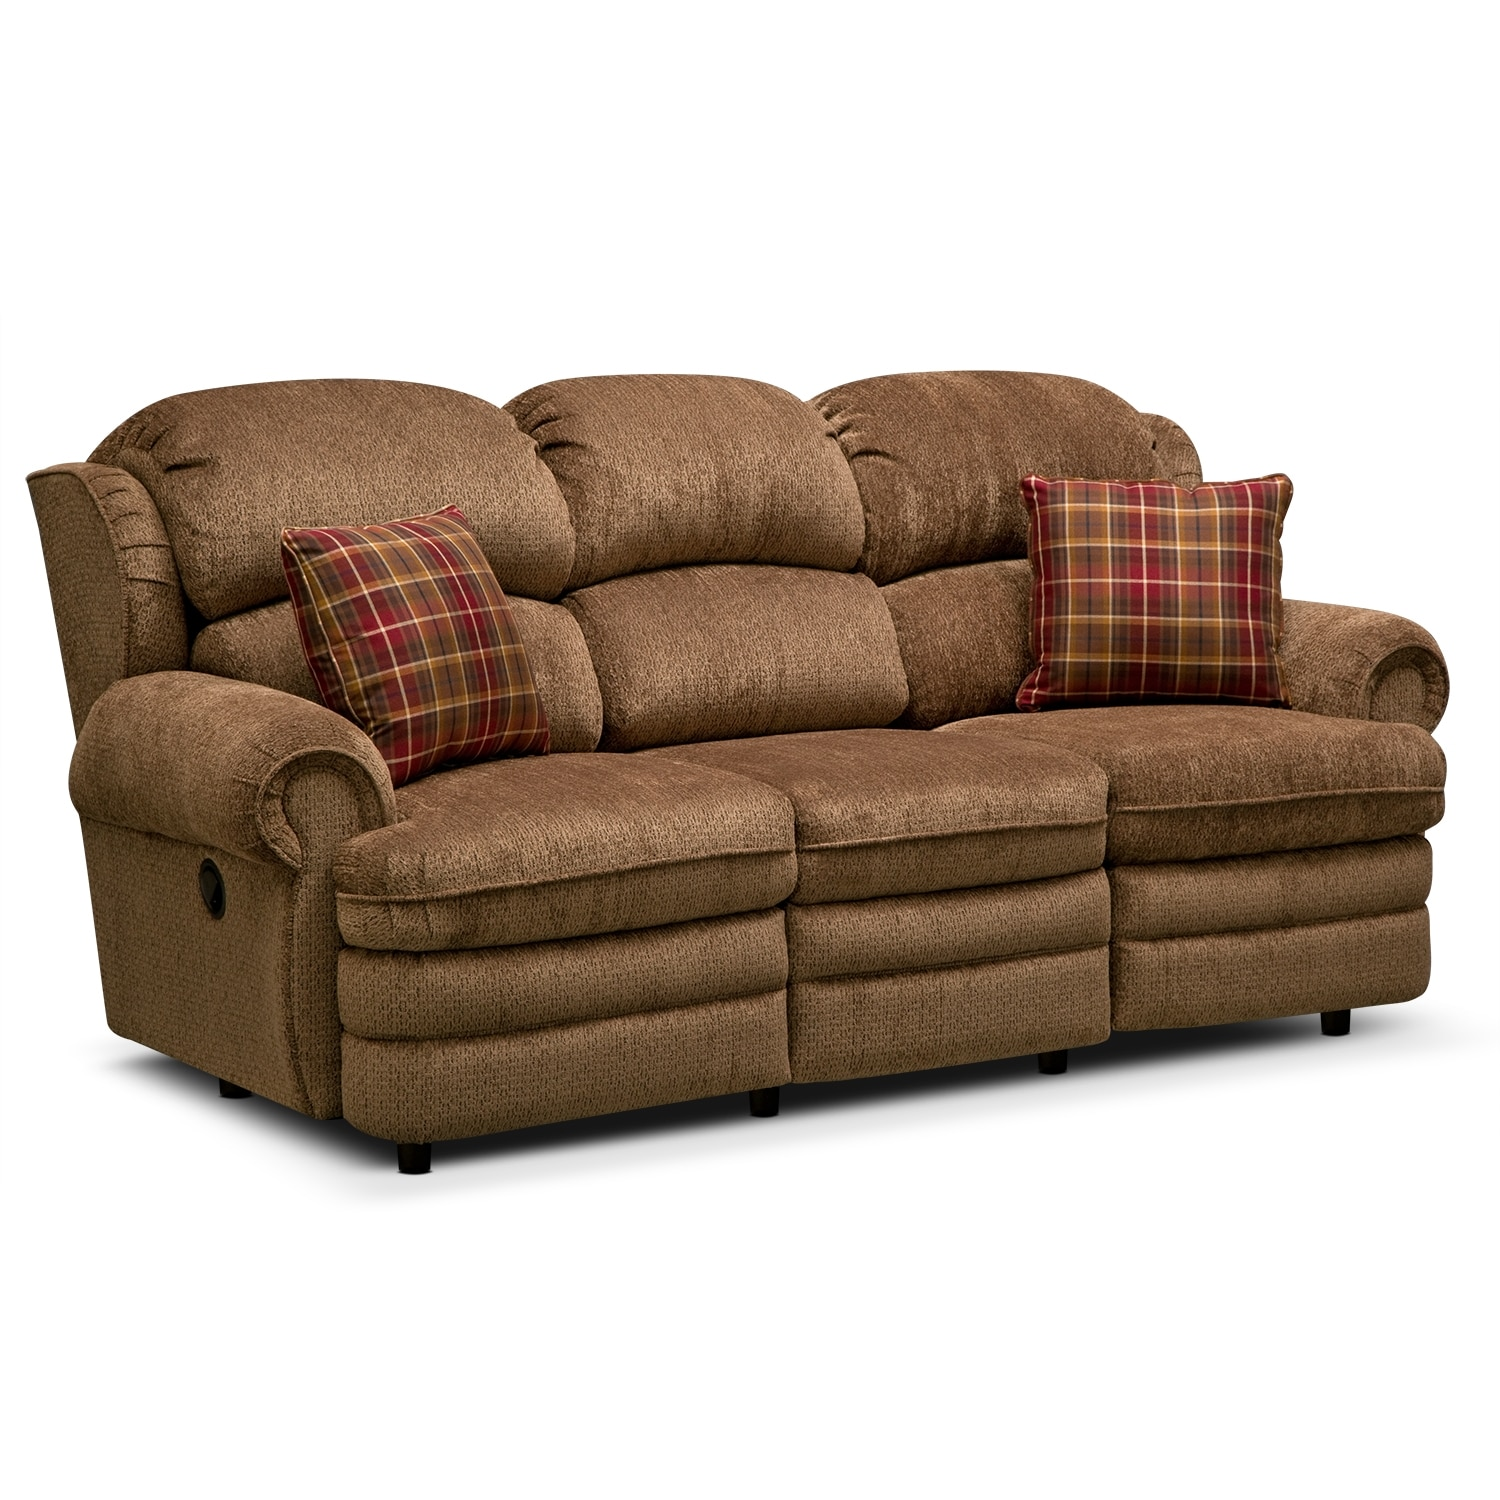 Reclining Sofa Value City Furniture 28 Images Furnishings For Every Room And Store Furniture